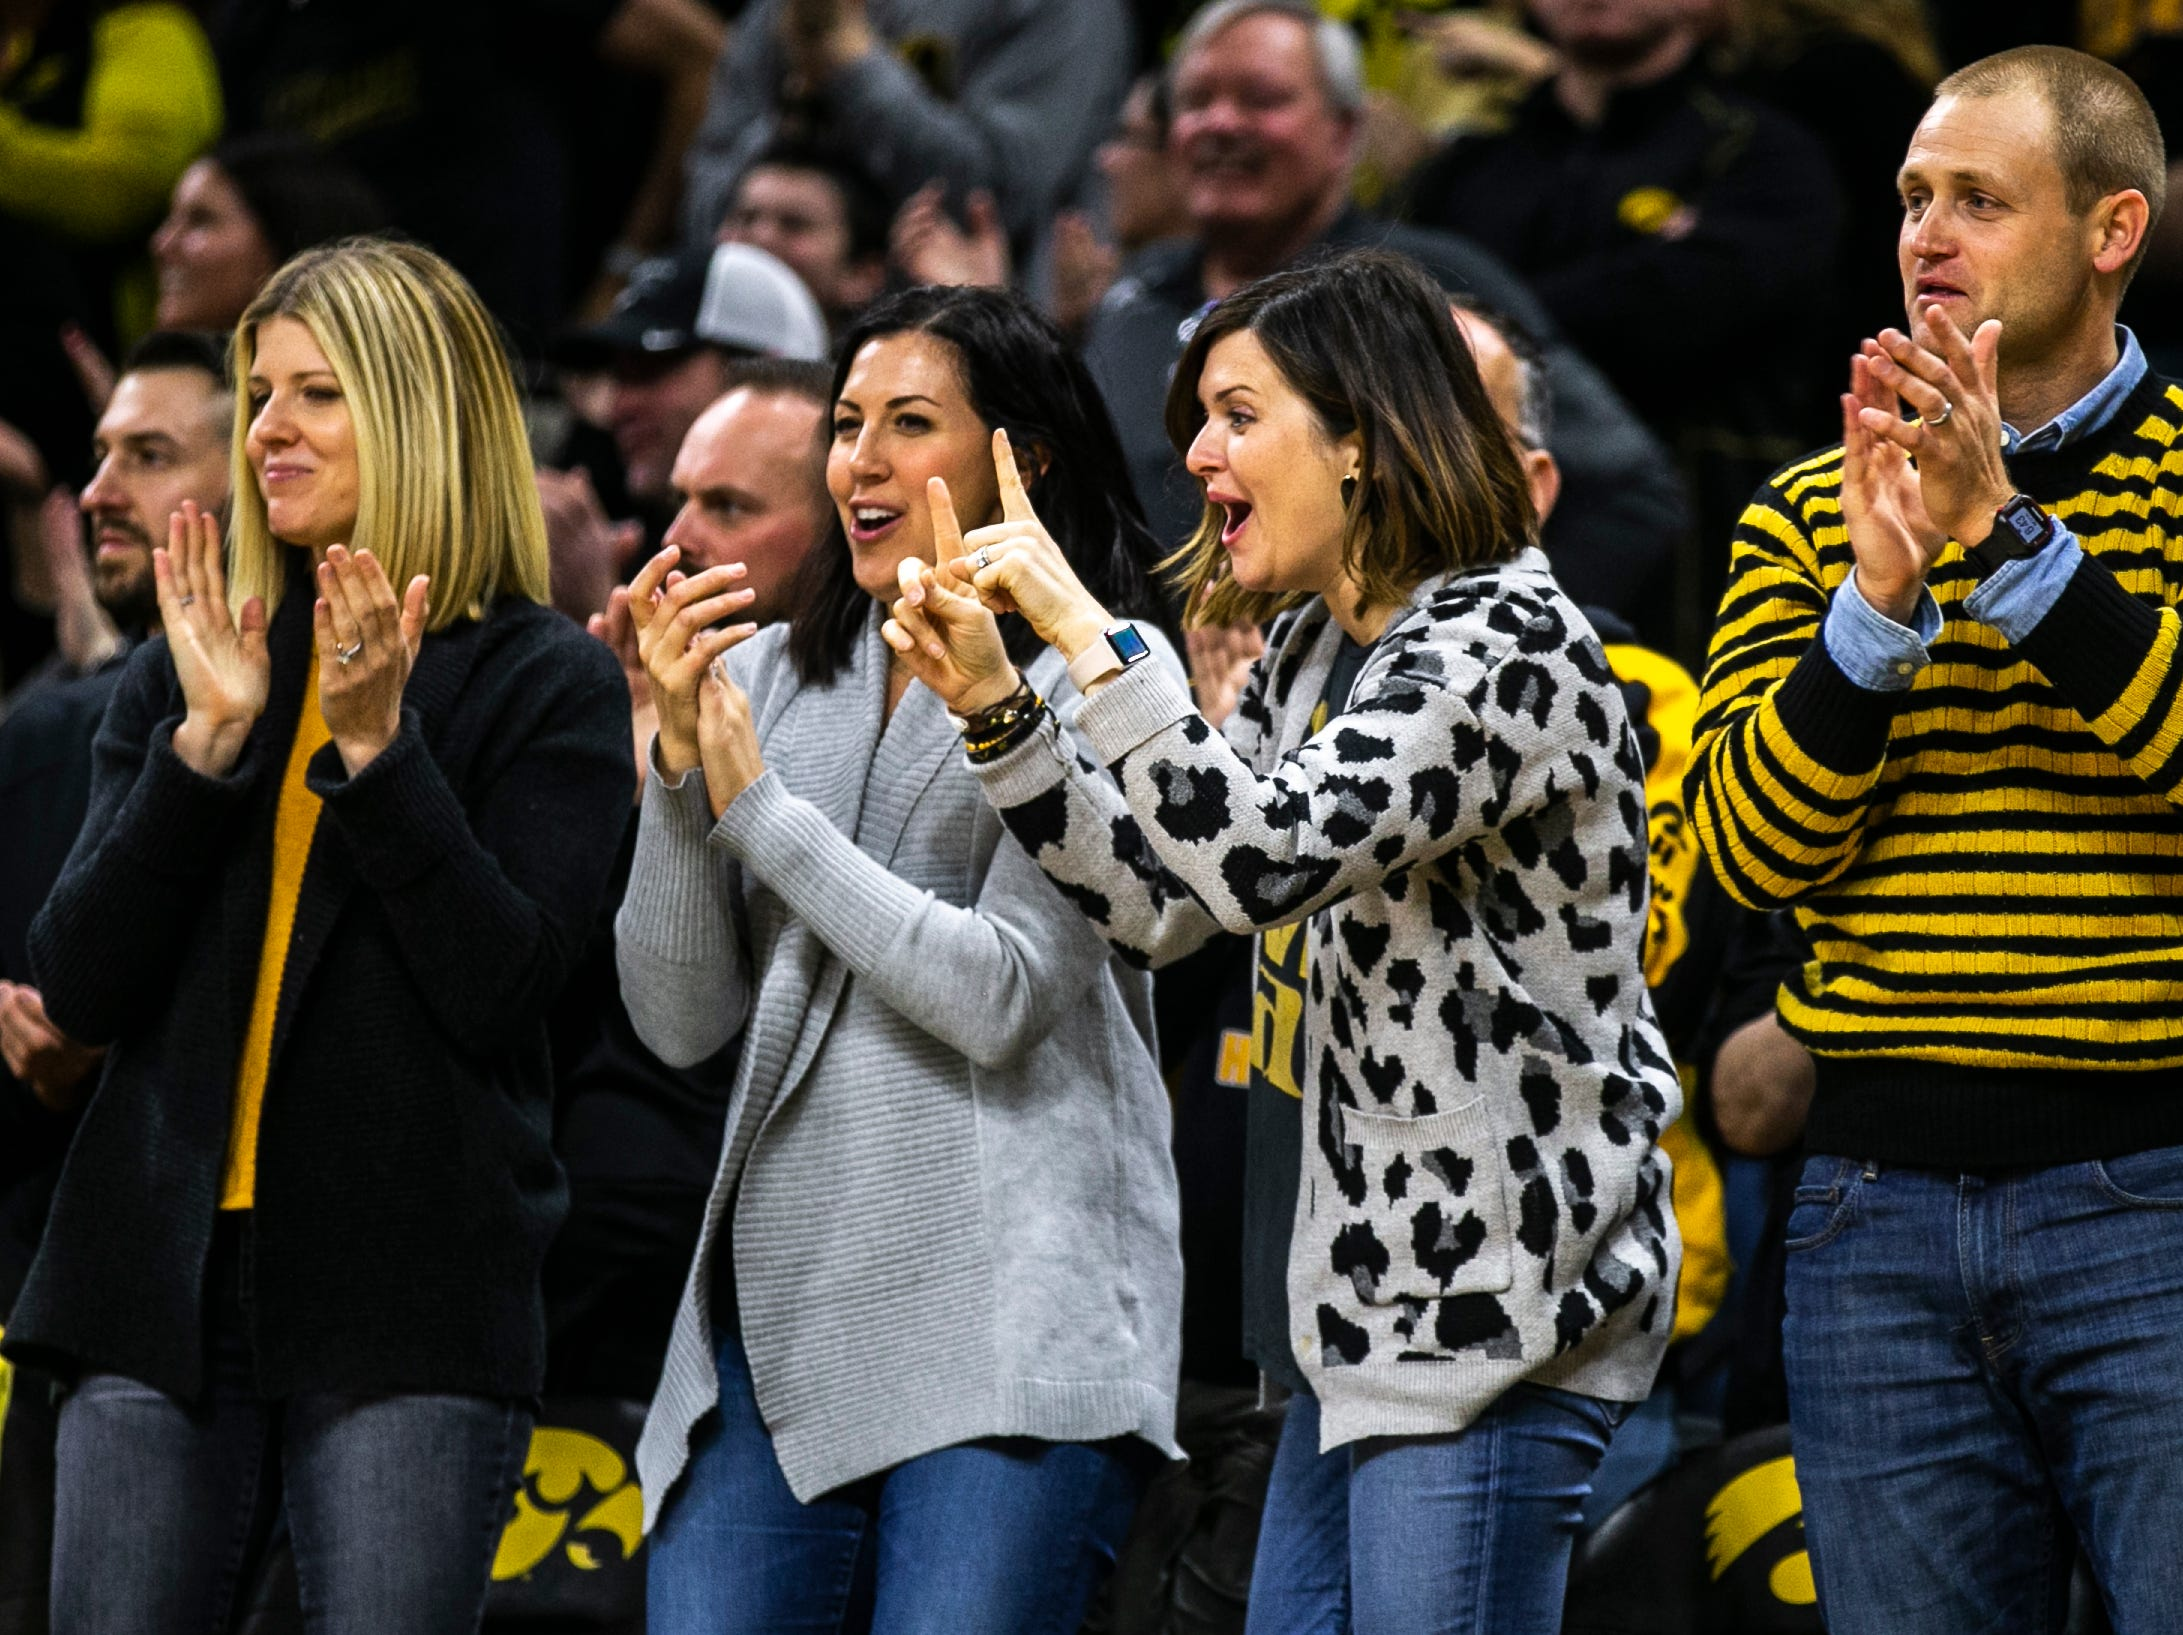 Nate Kaeding, far right, cheers during a NCAA Big Ten Conference men's basketball game on Friday, Feb. 1, 2019, at Carver-Hawkeye Arena in Iowa City, Iowa.